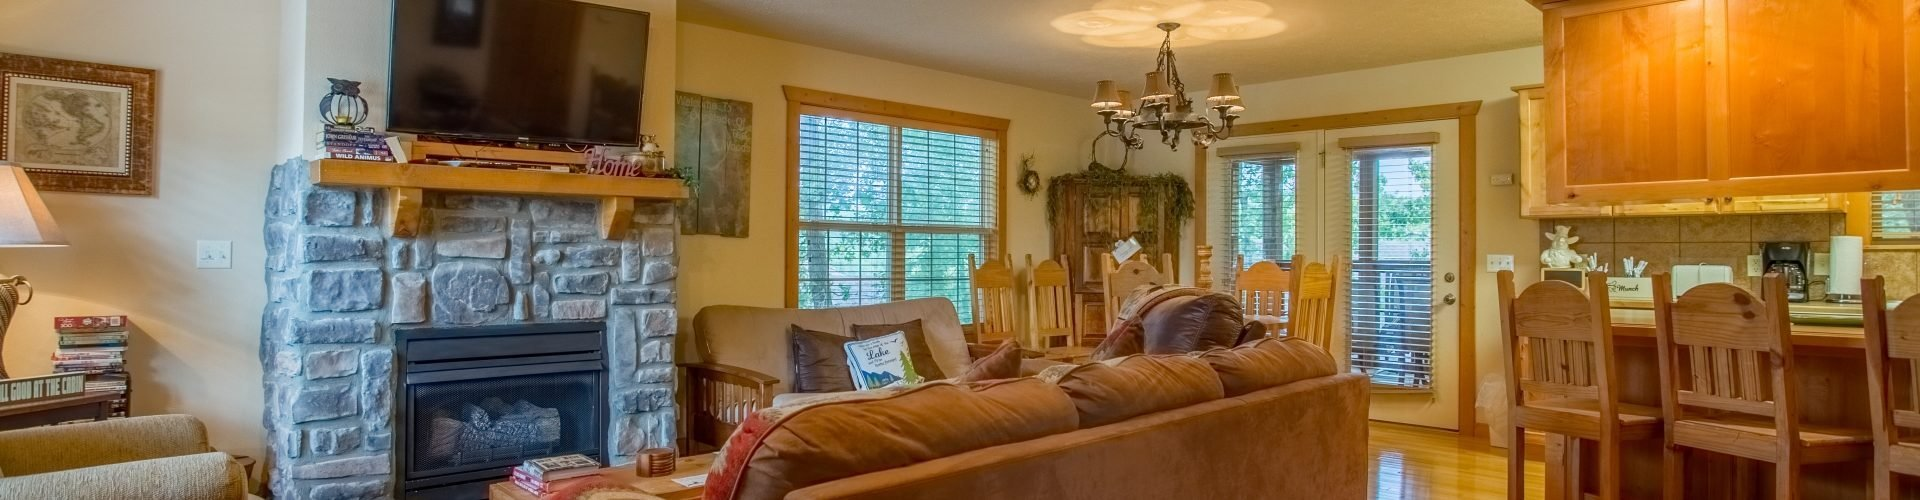 Best 3 Bedroom Cabins In Branson 2019 Discounts Branson With Pictures